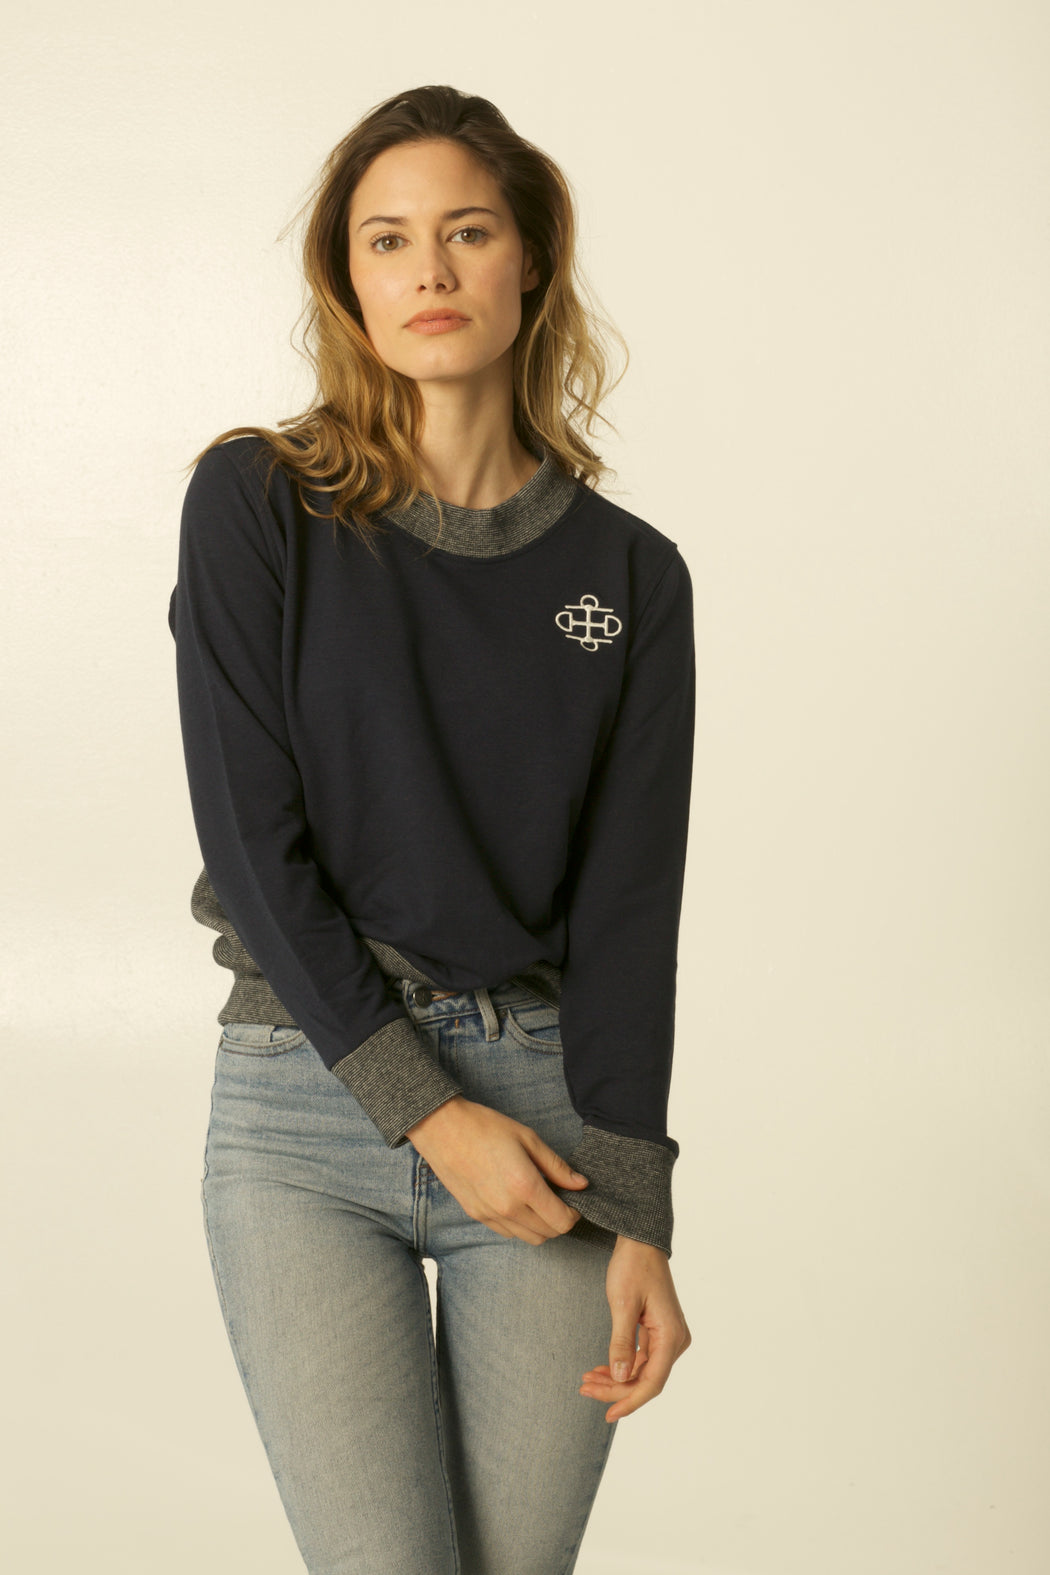 THE NAVY & IVORY BAMBOO CREWNECK SWEATER